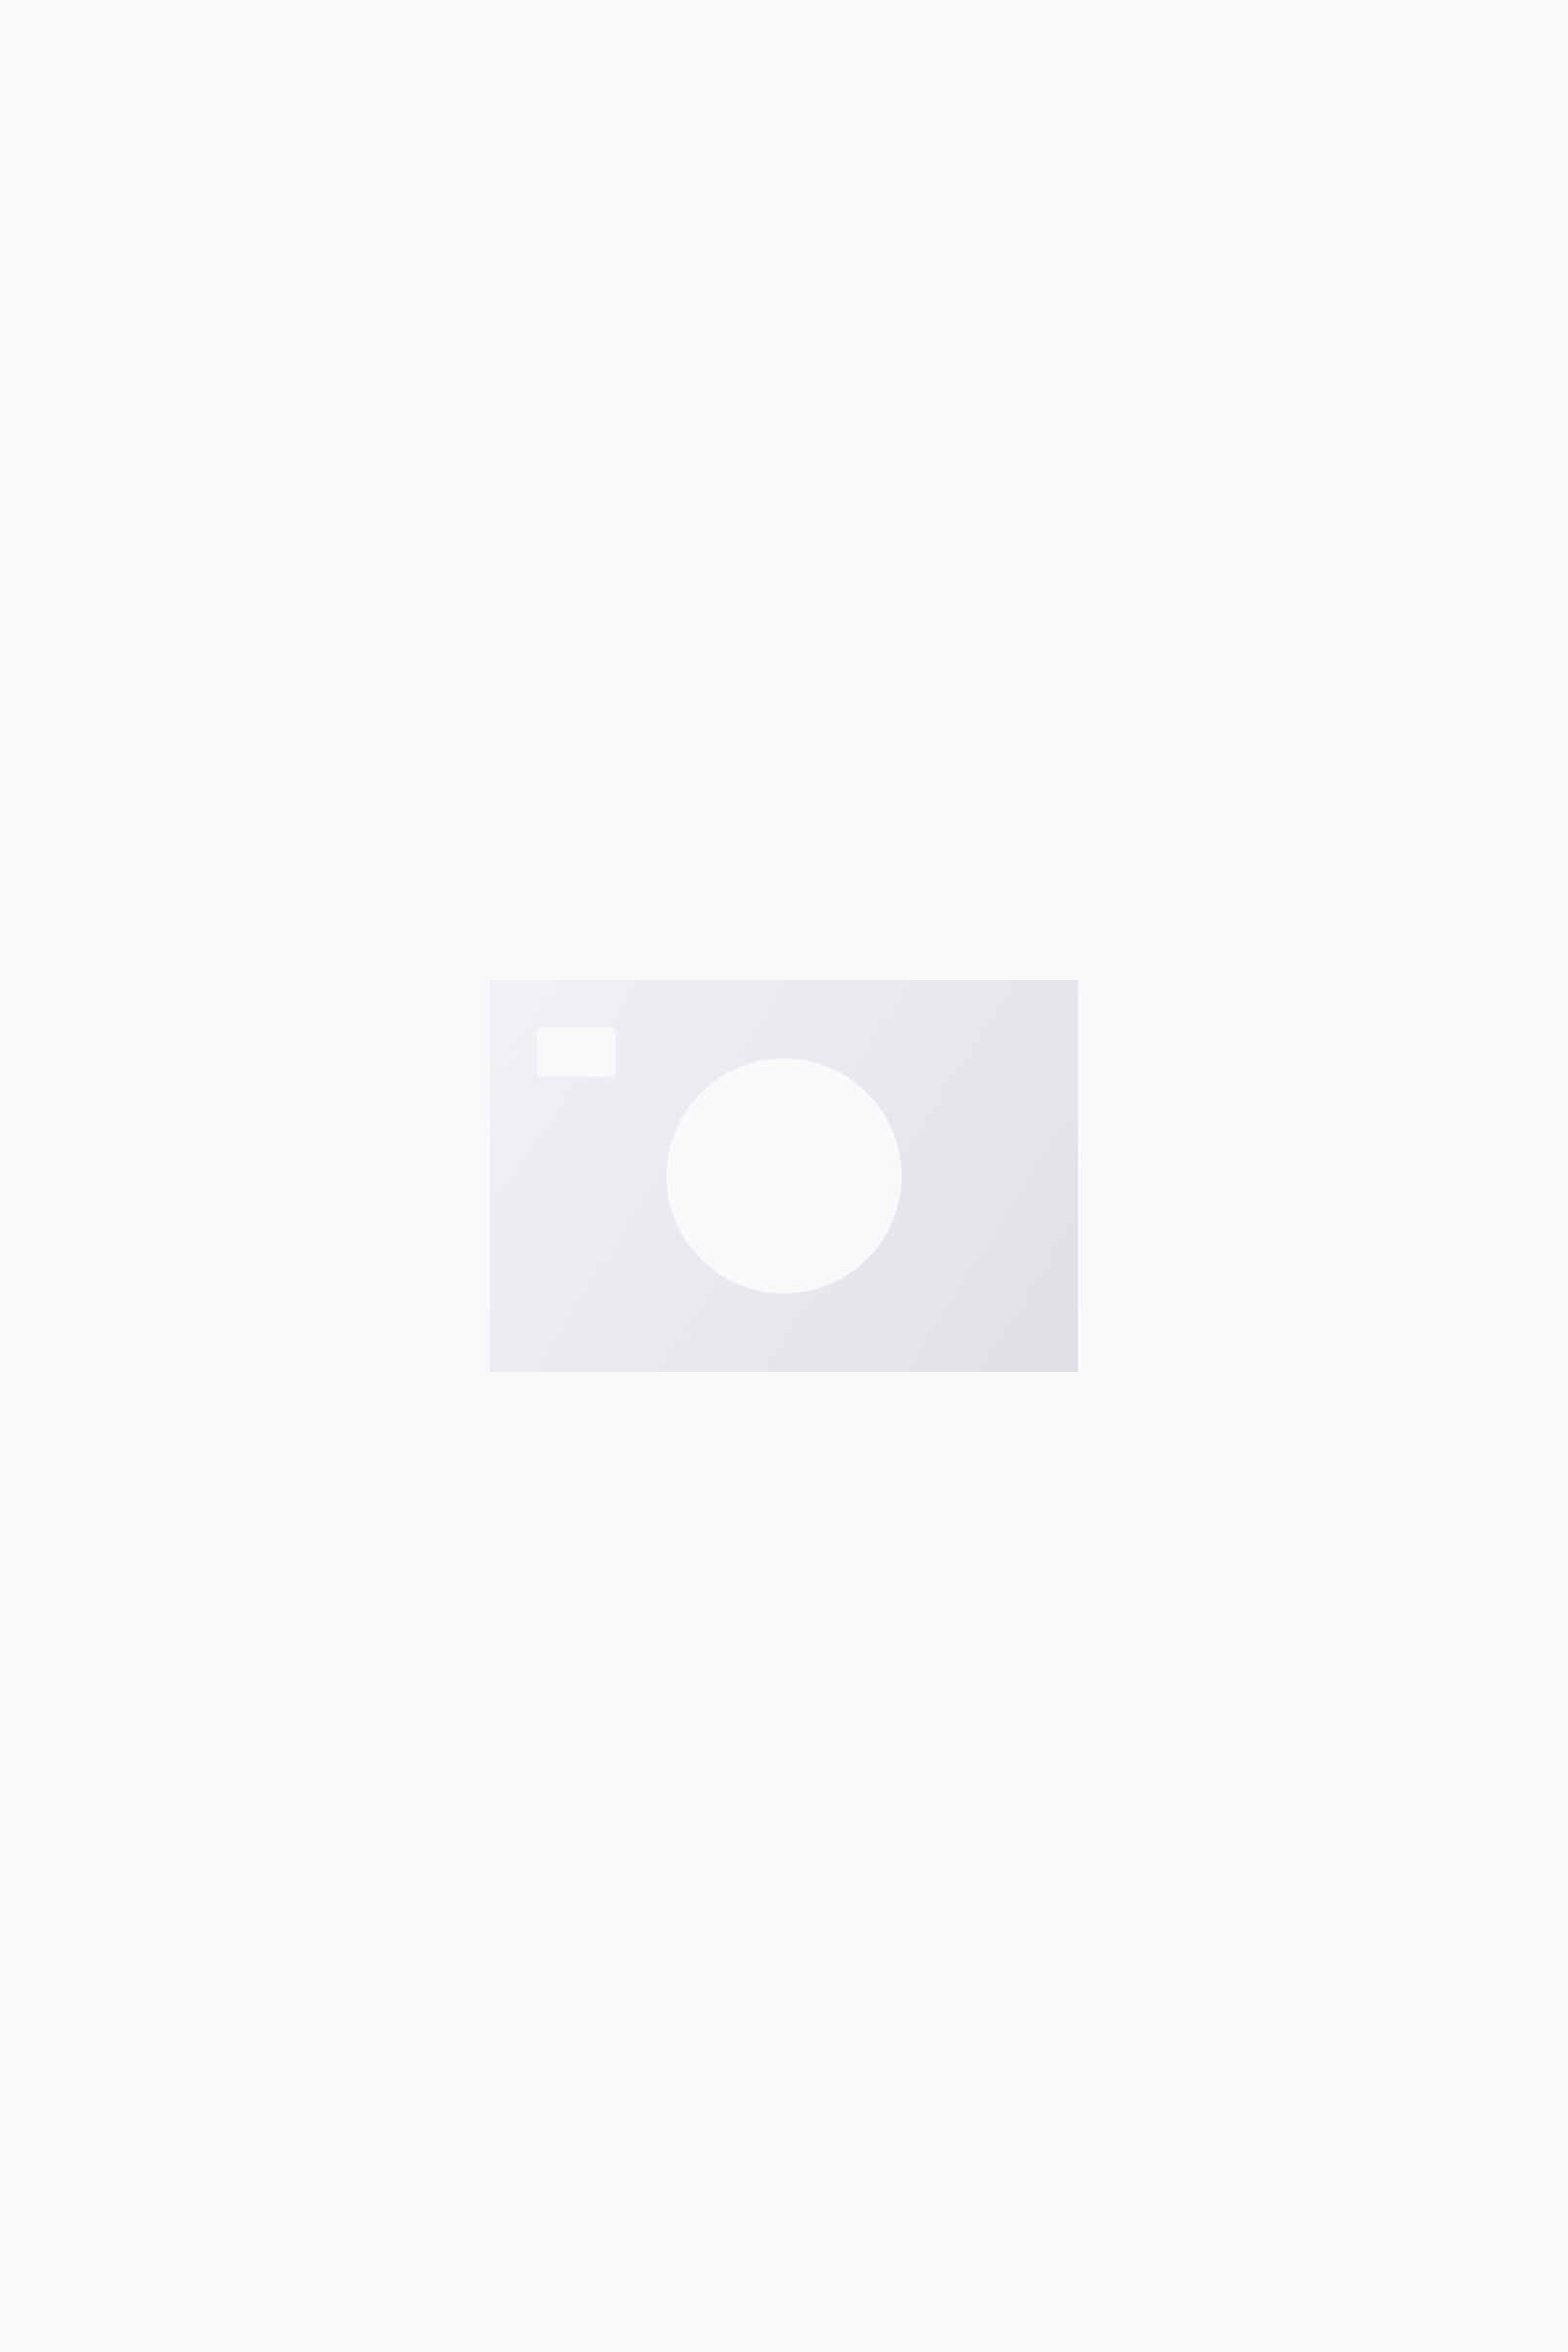 COS PULL-ON CUFFED TROUSERS,Light beige